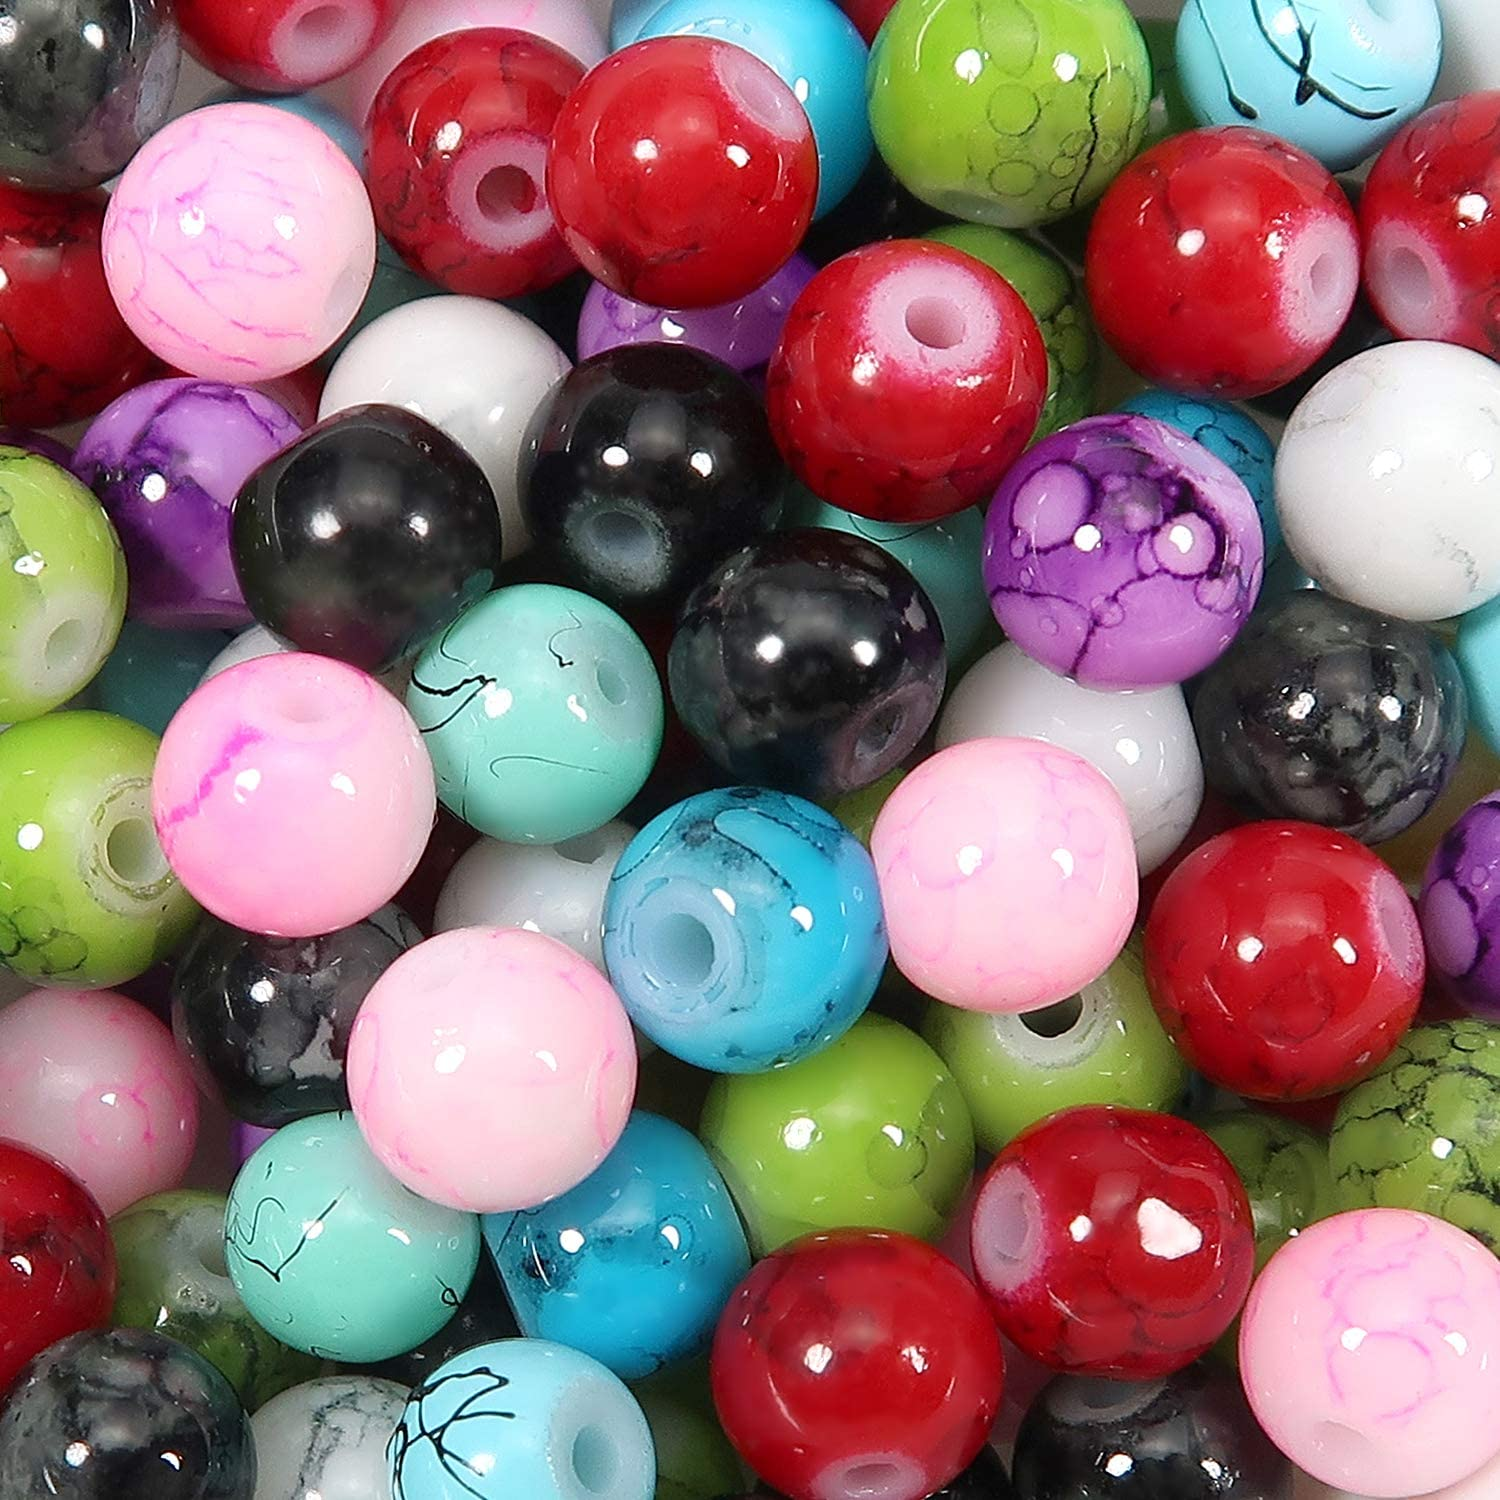 TOAOB 100pcs Marble Pattern Round Mixed Colors Glass Beads 6mm for Jewelry Making